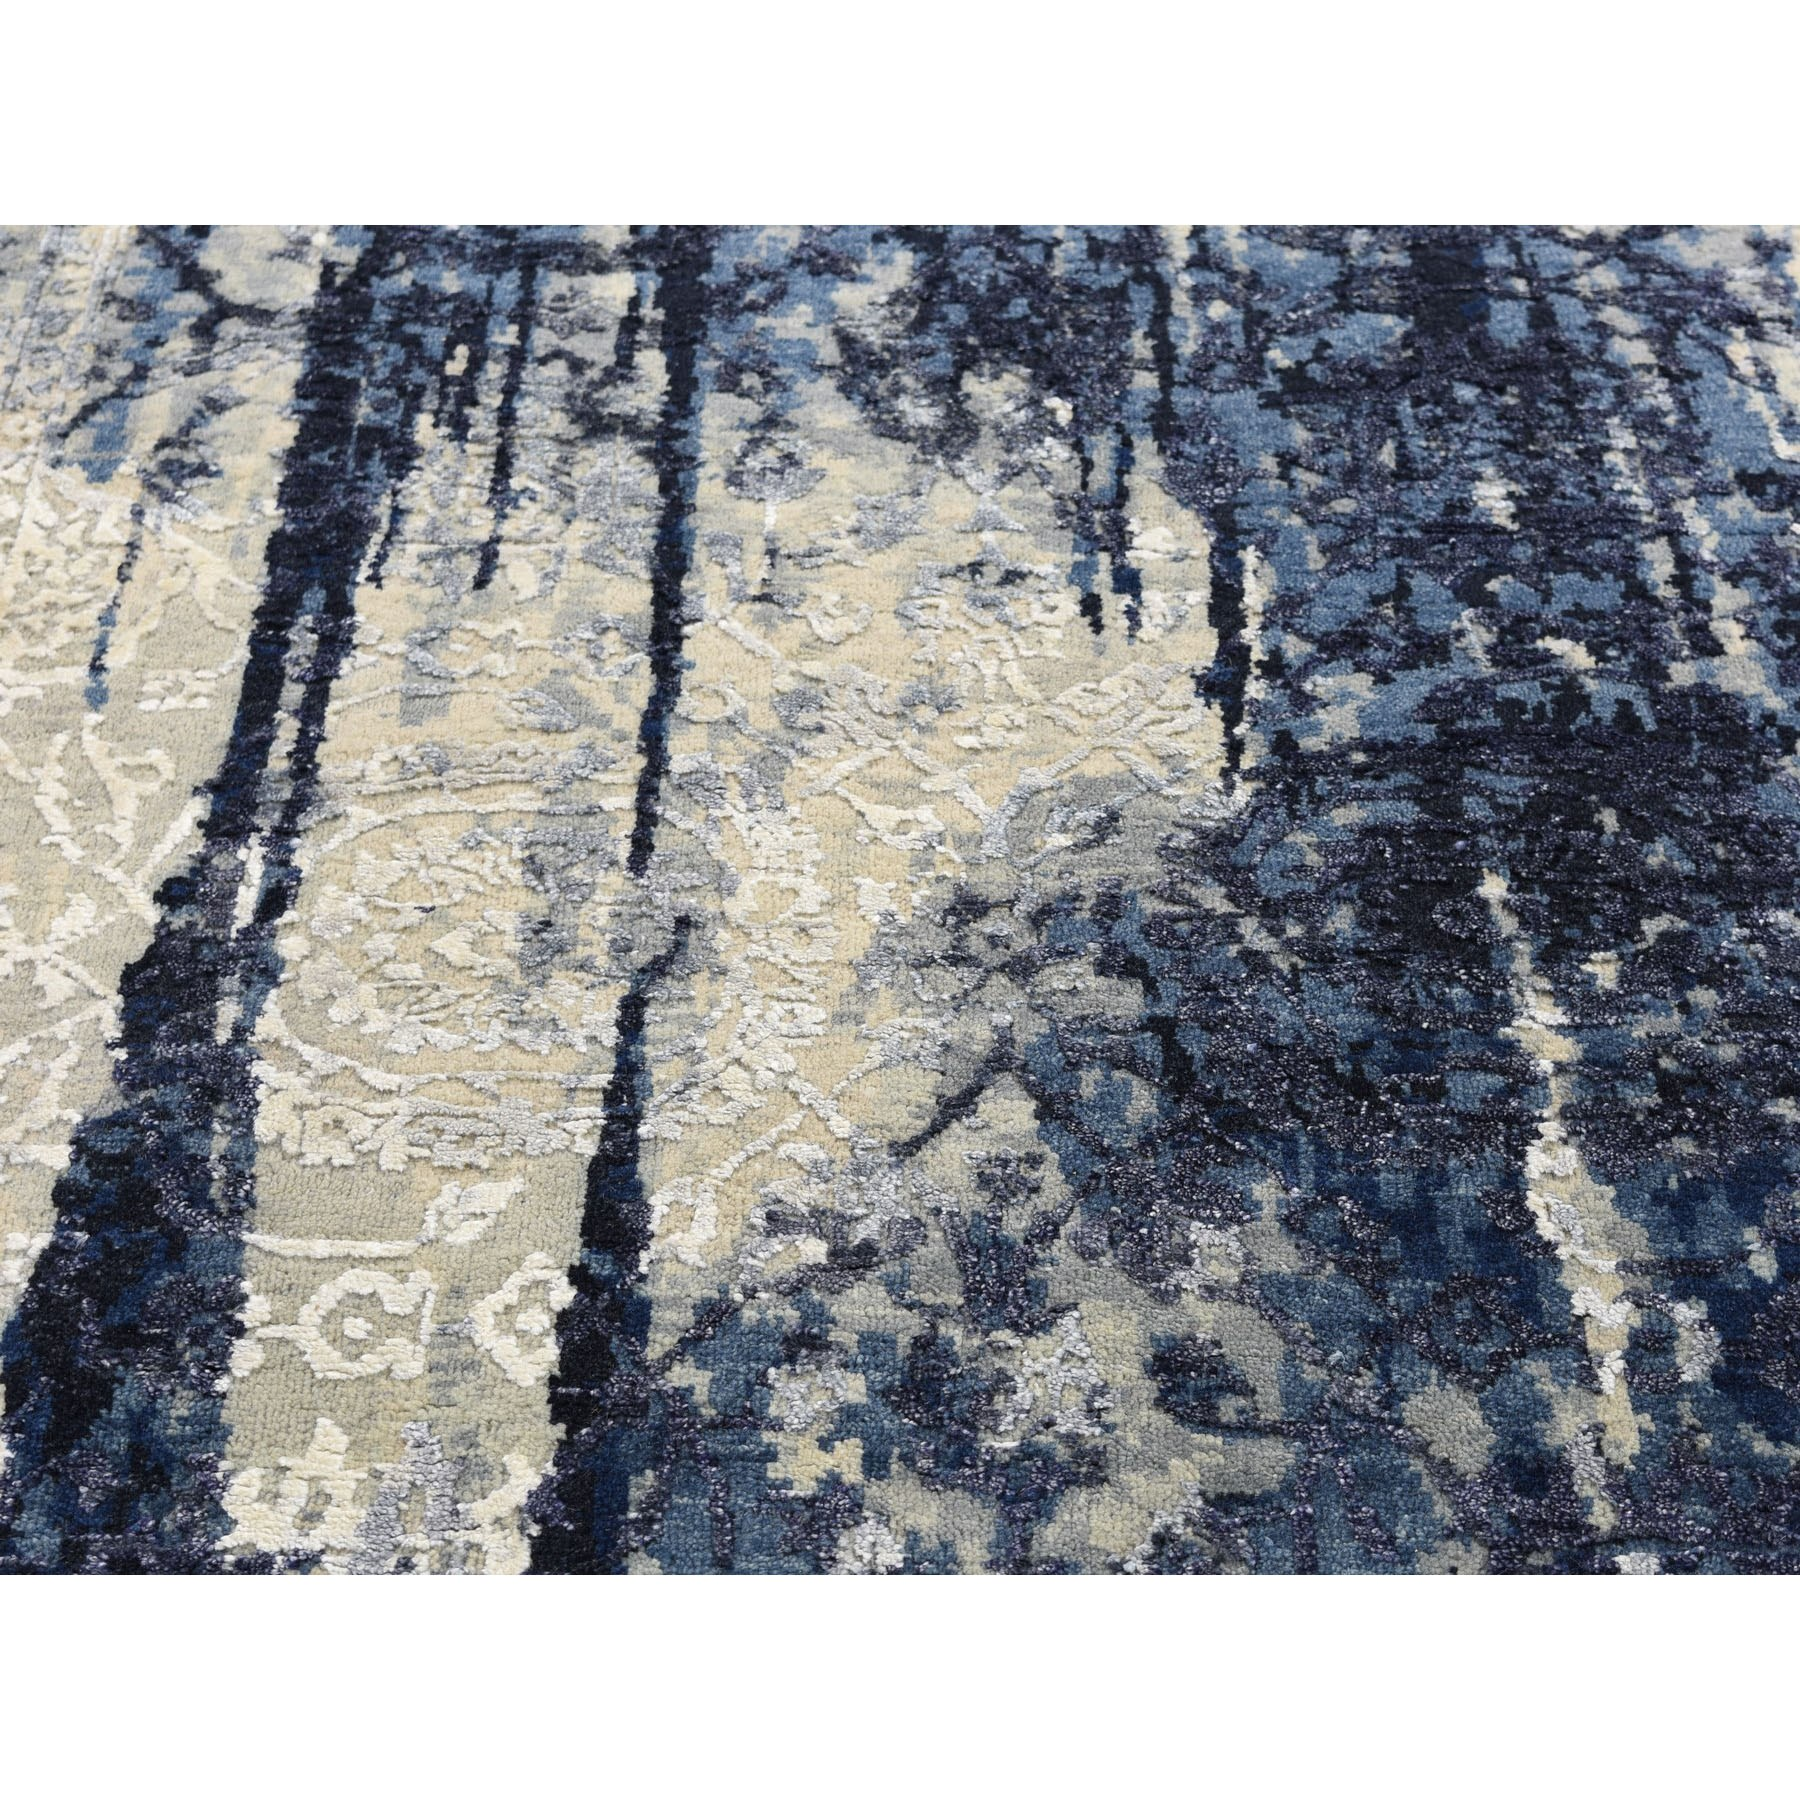 5-1 x6-10  Wool And Silk Shibori Design Tone On Tone Hand Knotted Oriental Rug